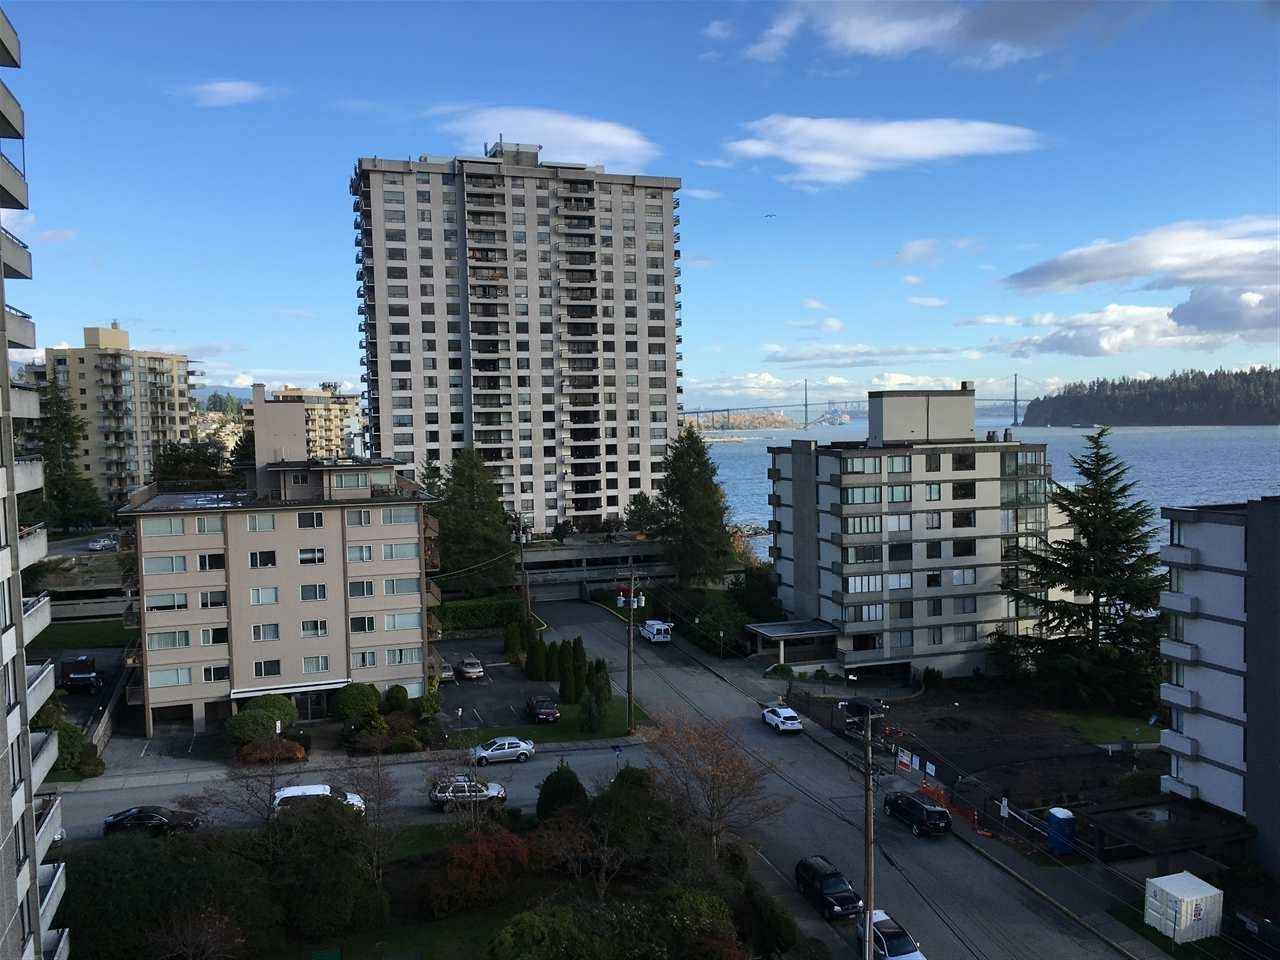 """Main Photo: 801 2135 ARGYLE Avenue in West Vancouver: Dundarave Condo for sale in """"THE CRESCENT"""" : MLS®# R2320802"""